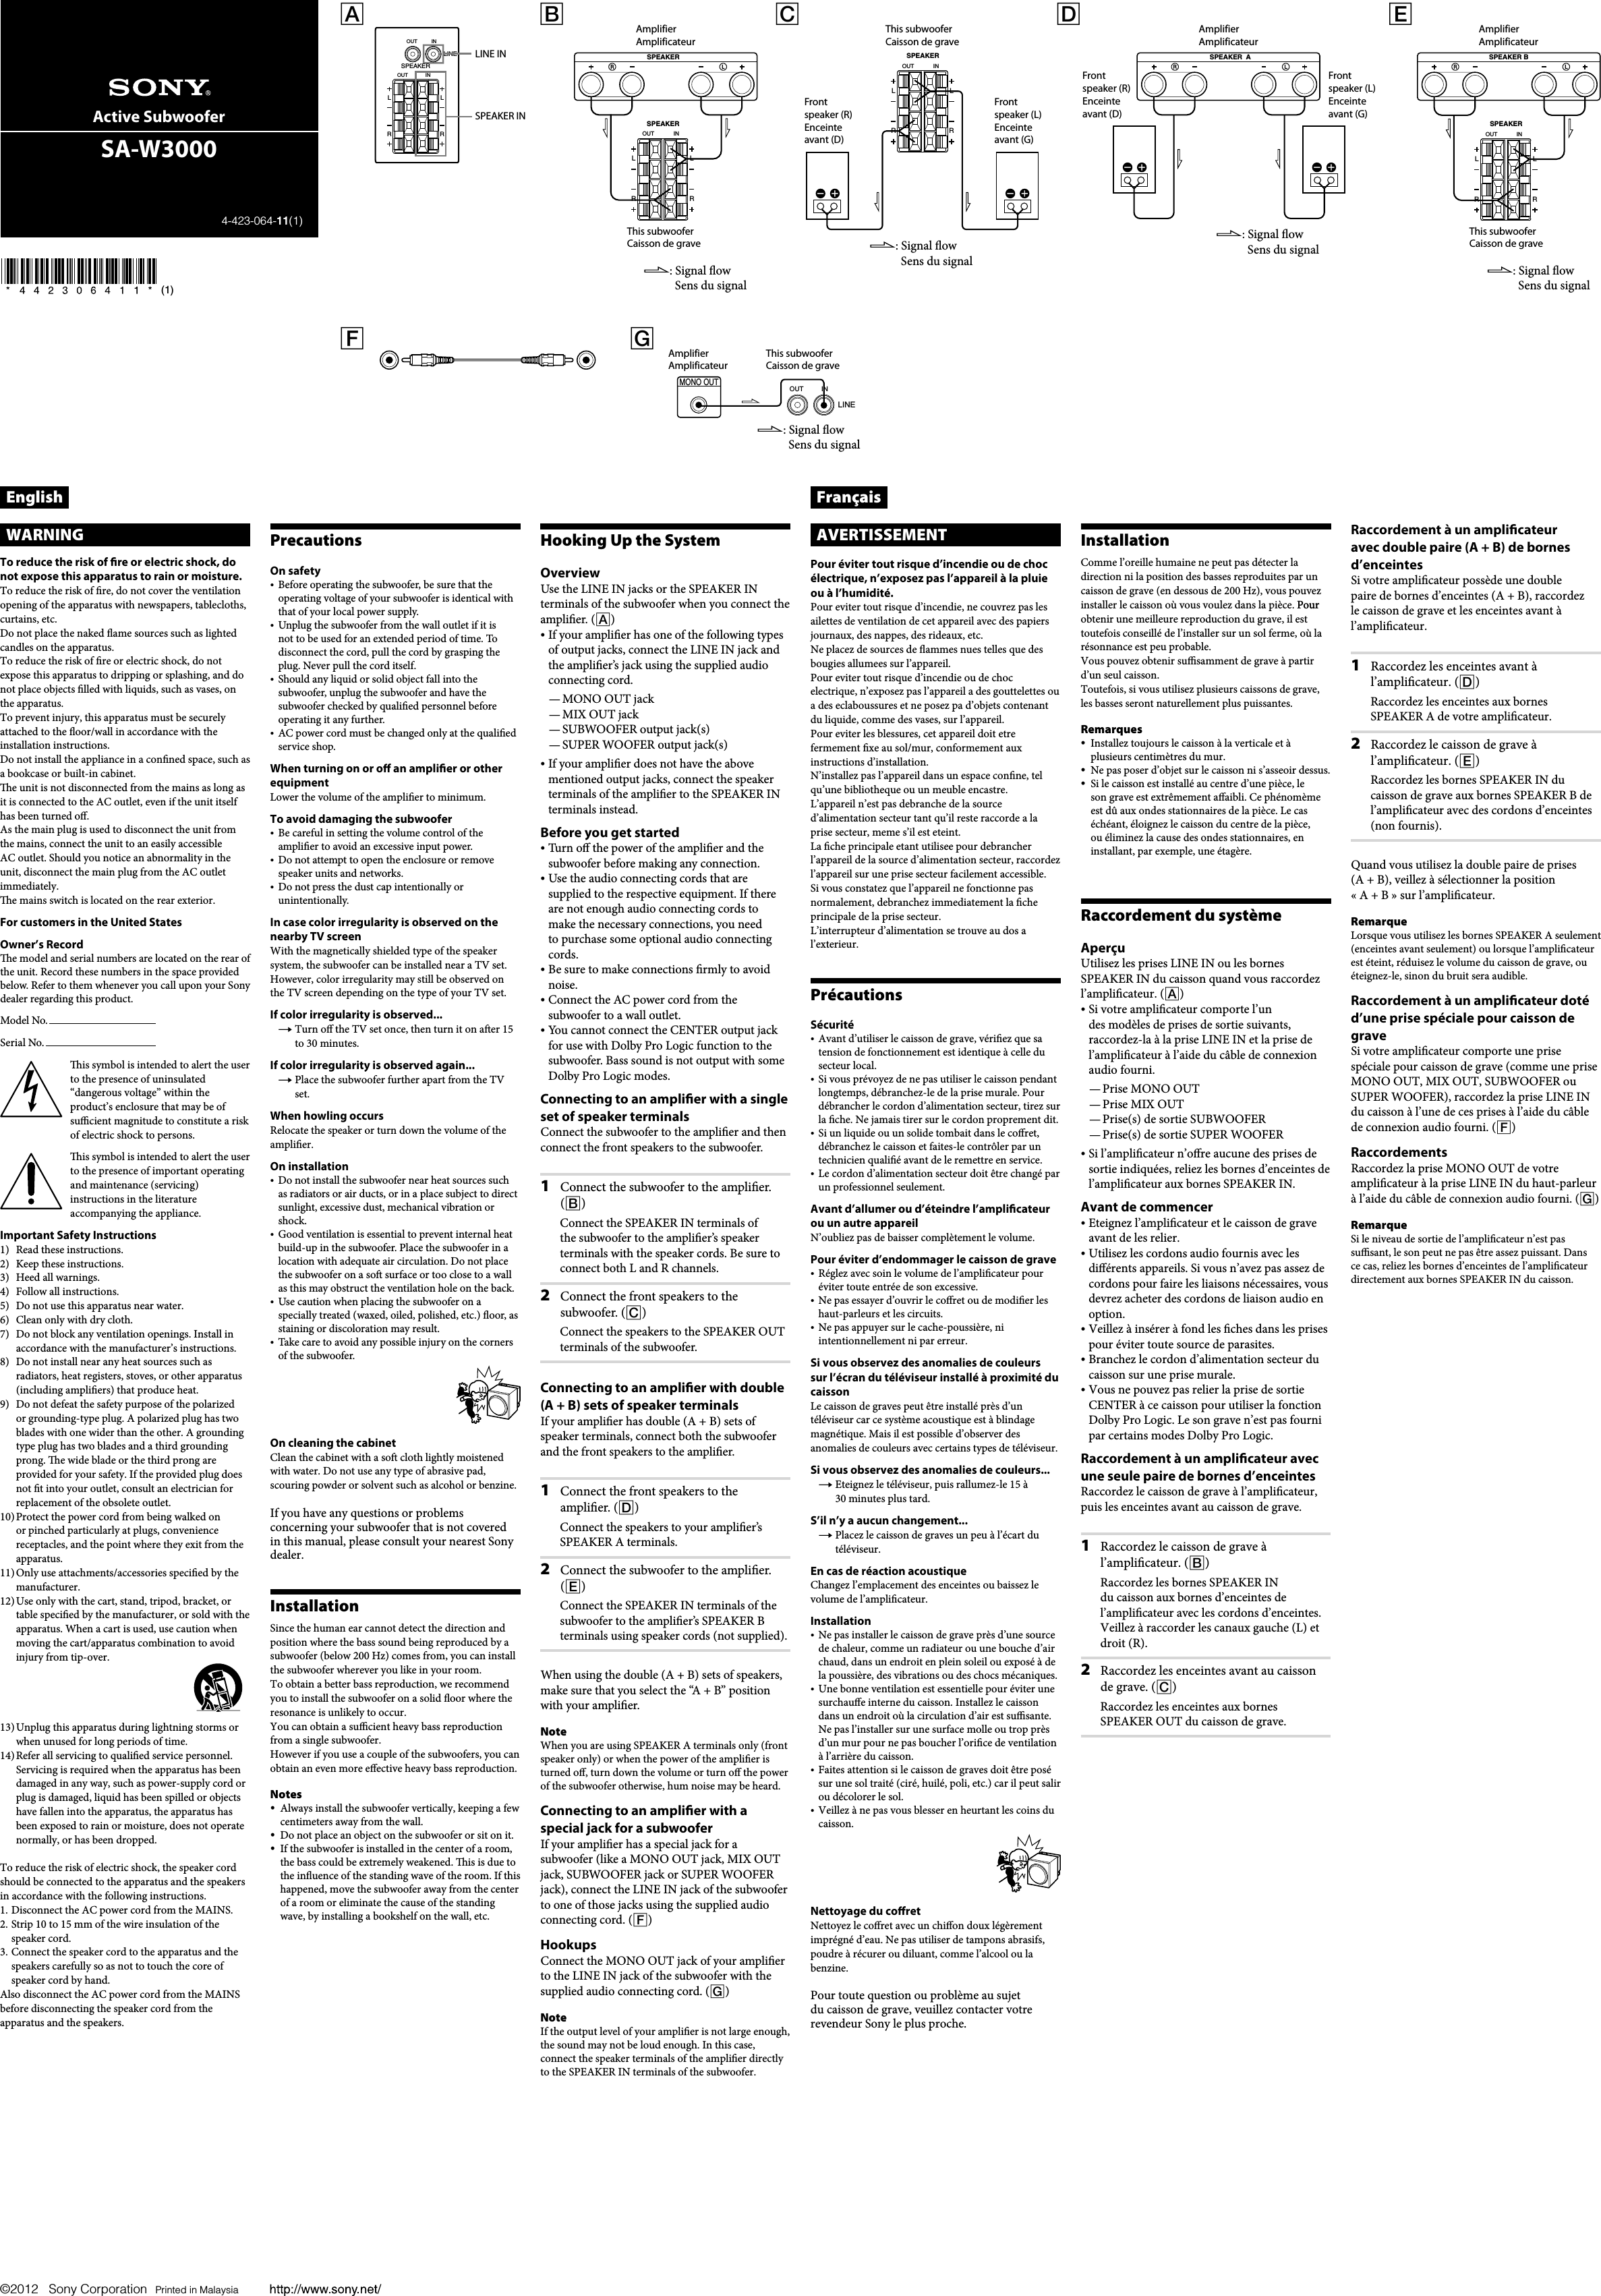 sony sa w3000 user manual operating instructions saw3000 specific rh usermanual wiki Sony Home Subwoofer Sony Powered Subwoofer Home Theater